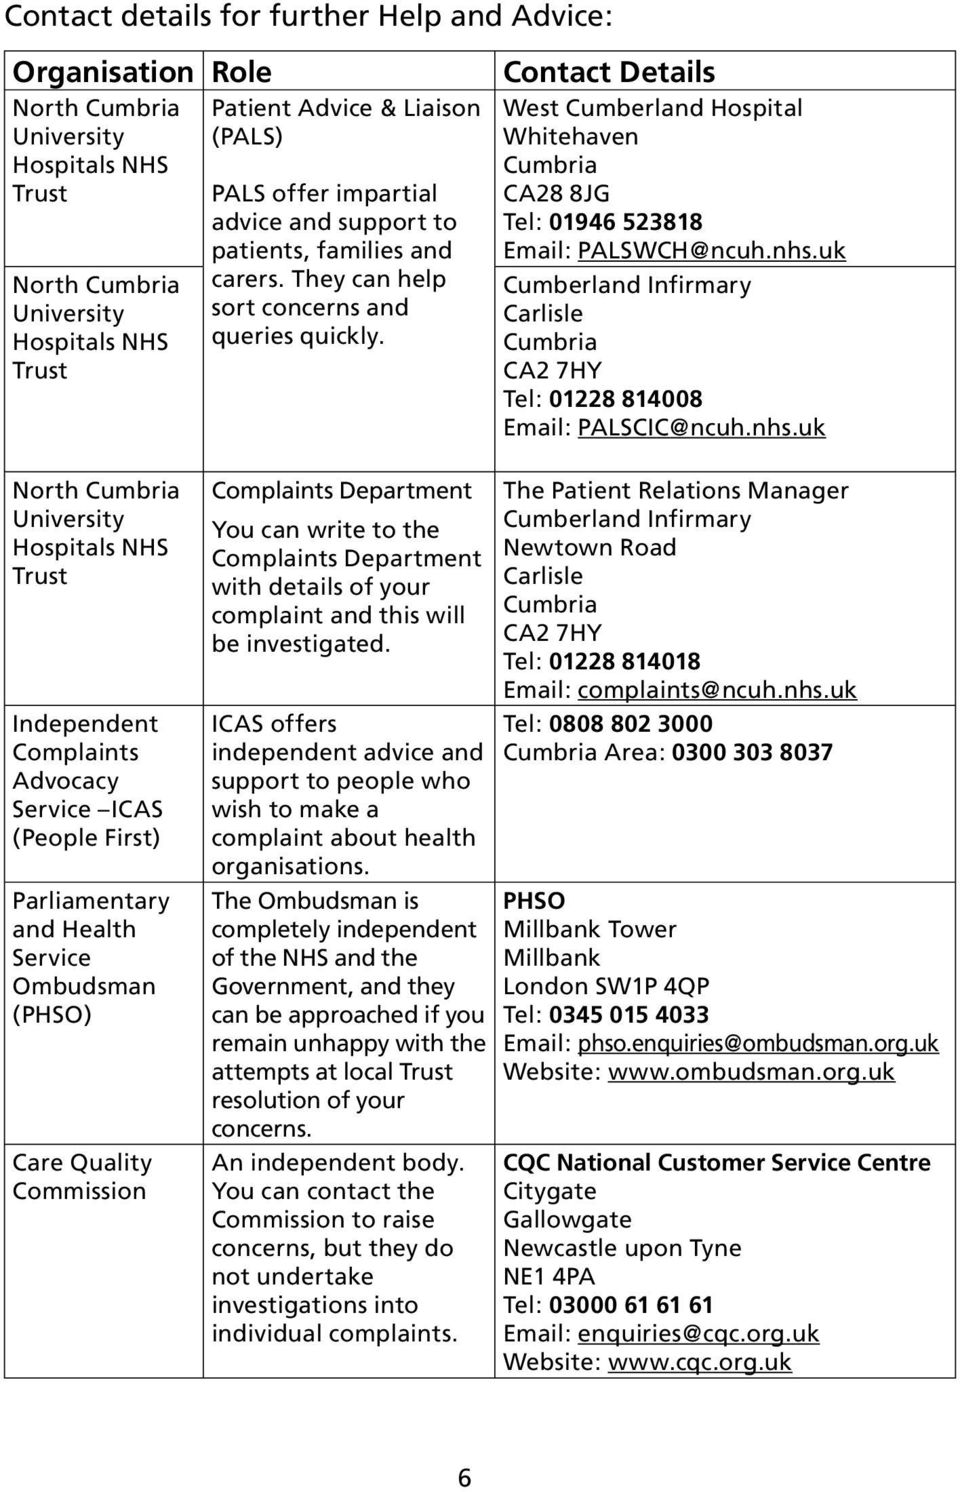 Contact Details West Cumberland Hospital Whitehaven Cumbria CA28 8JG Tel: 01946 523818 Email: PALSWCH@ncuh.nhs.uk Cumberland Infirmary Carlisle Cumbria CA2 7HY Tel: 01228 814008 Email: PALSCIC@ncuh.